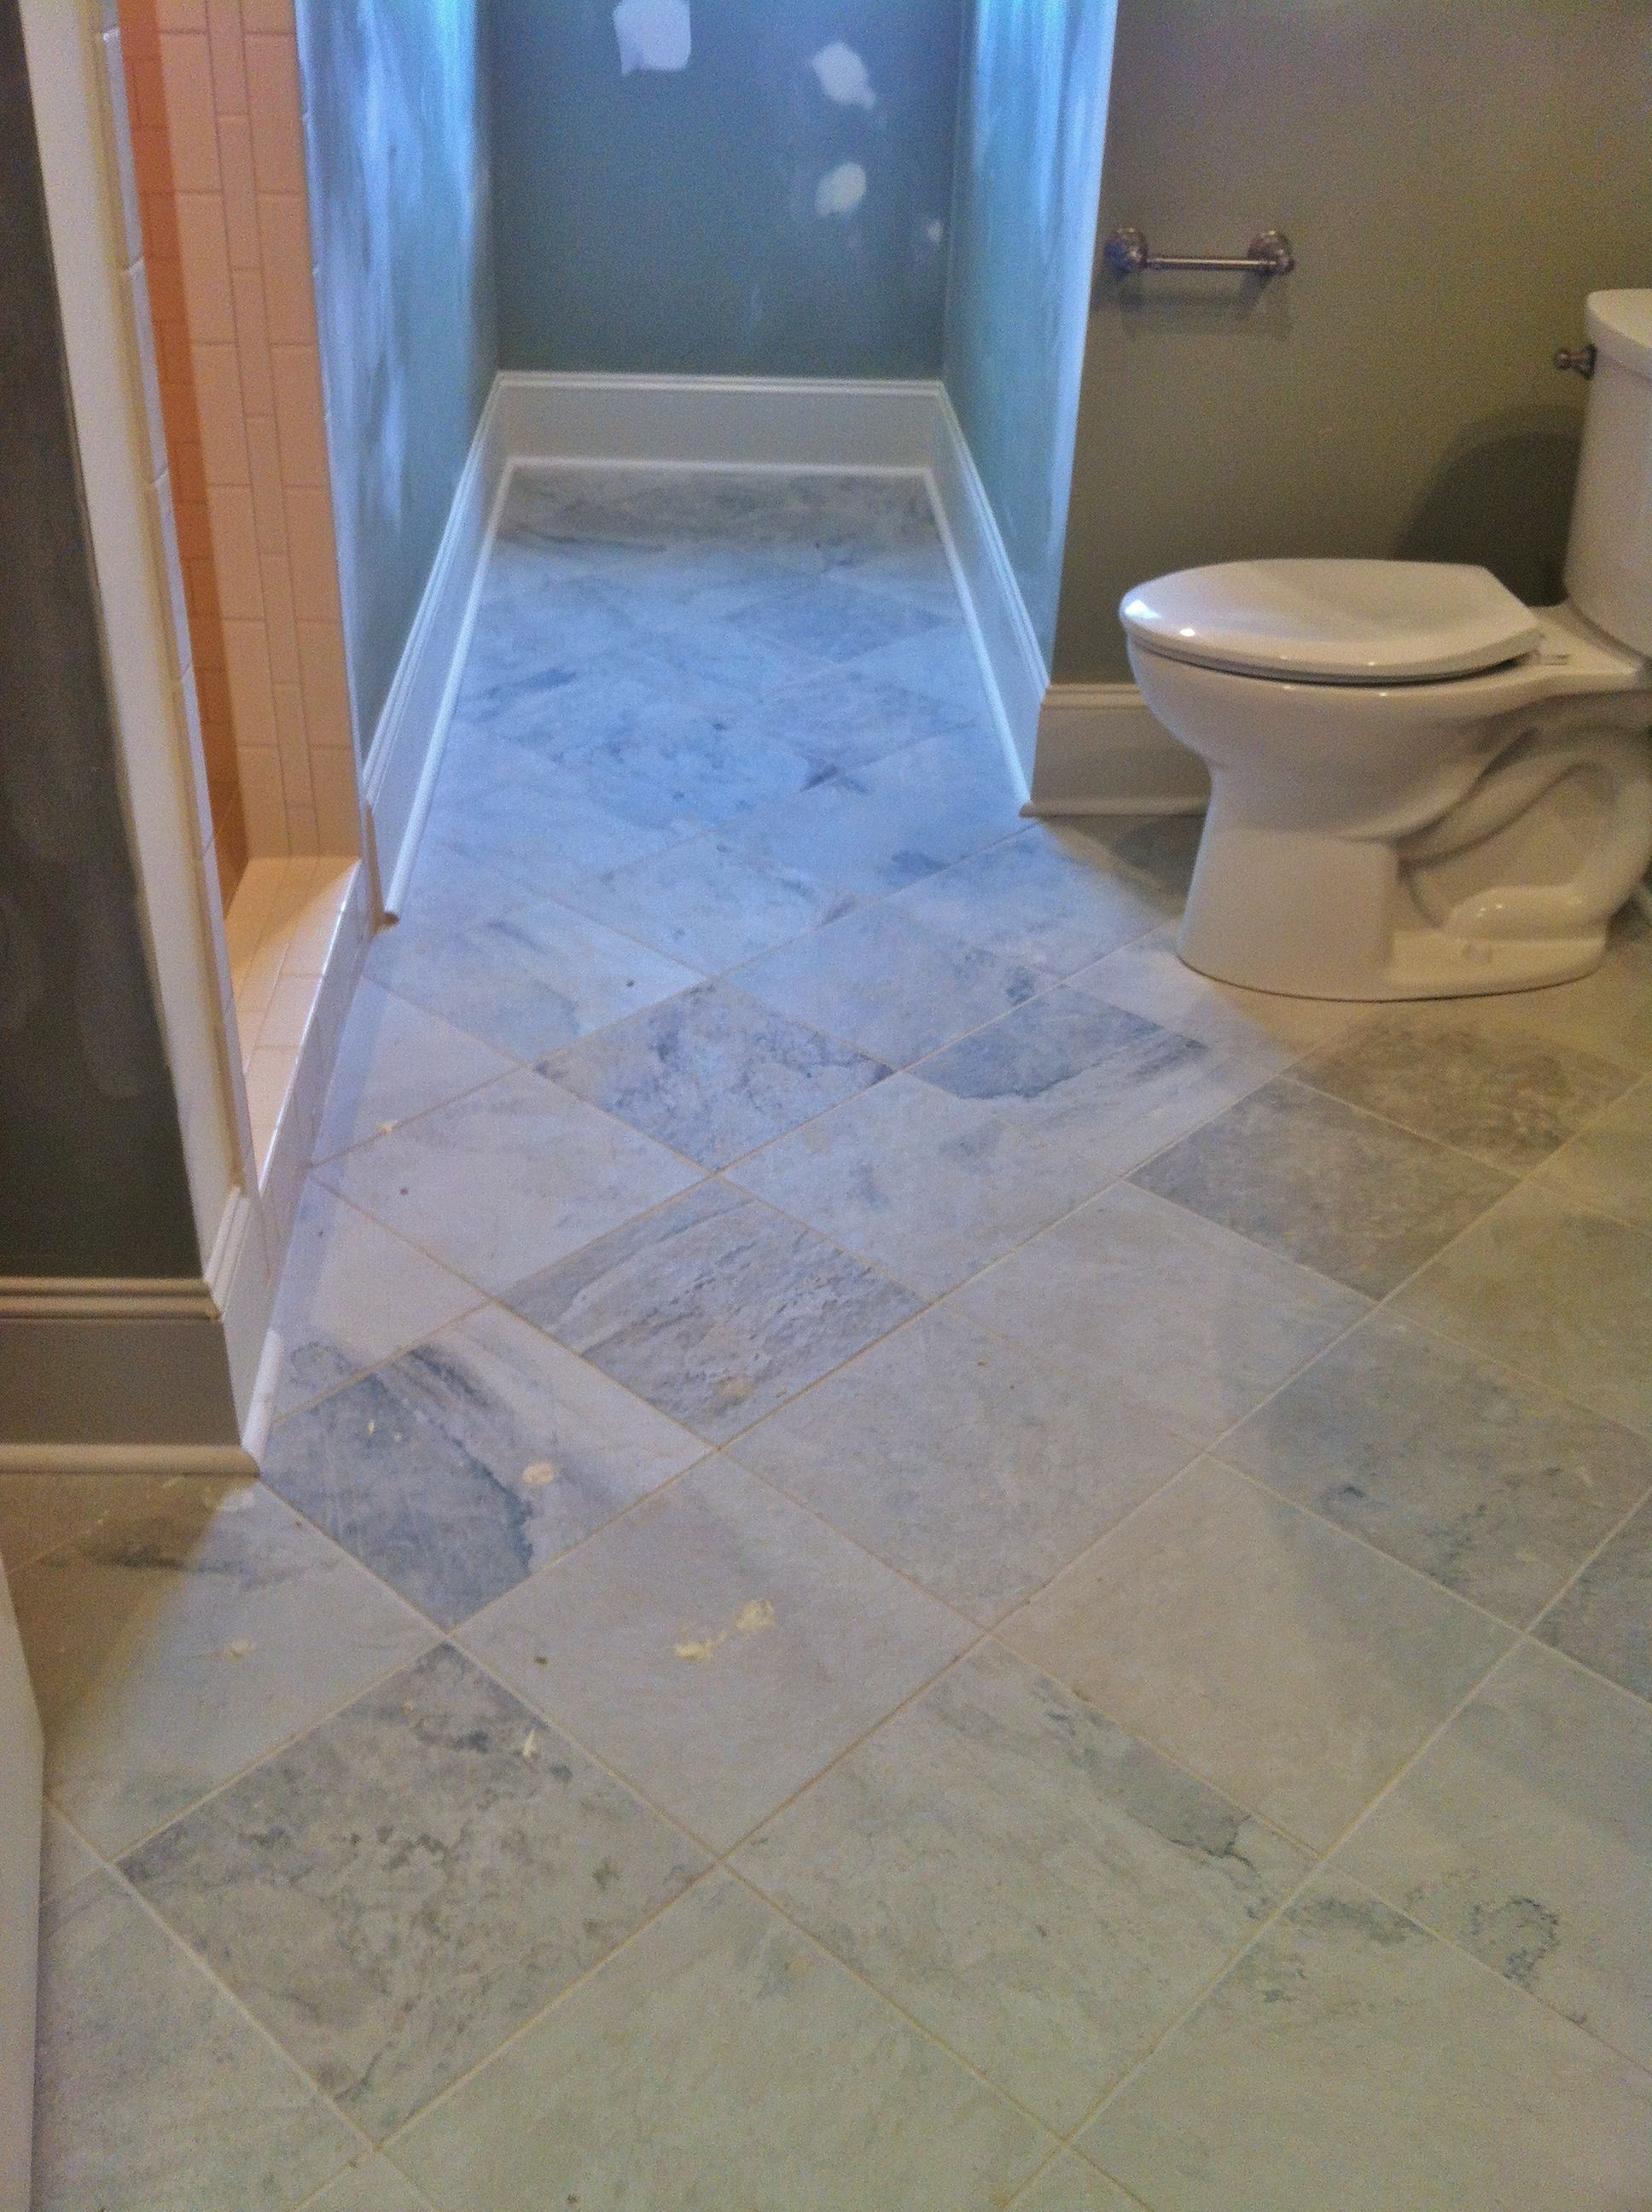 12x12 porcelain tile set diagonally on guest bathroom floor | Tile ...